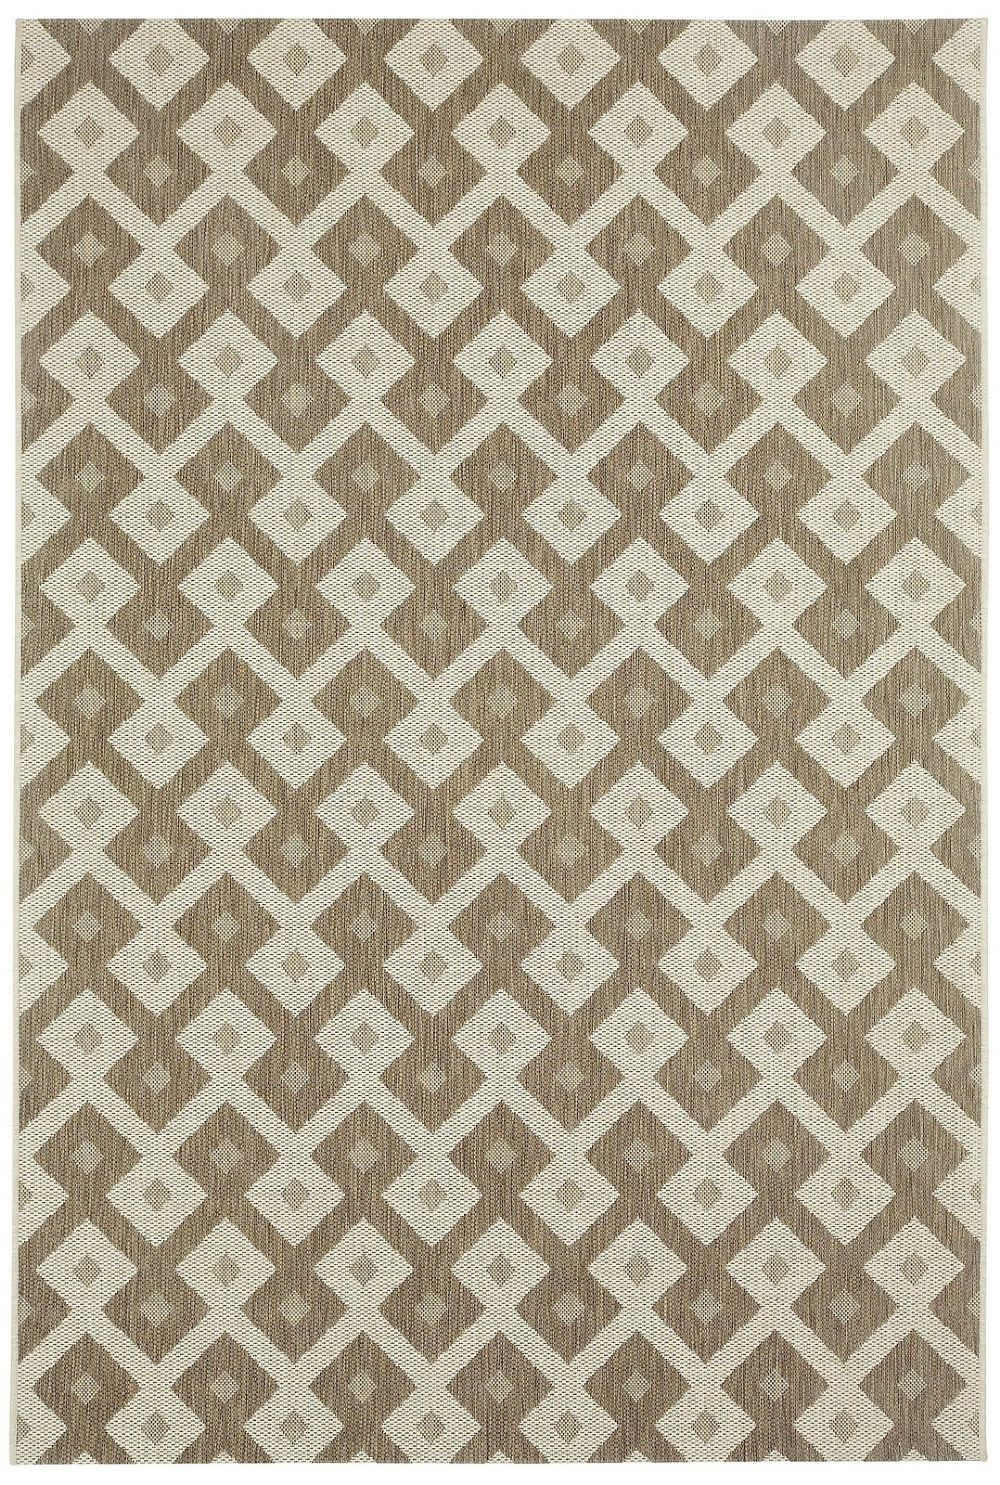 capel elsinore-diamond contemporary area rug collection